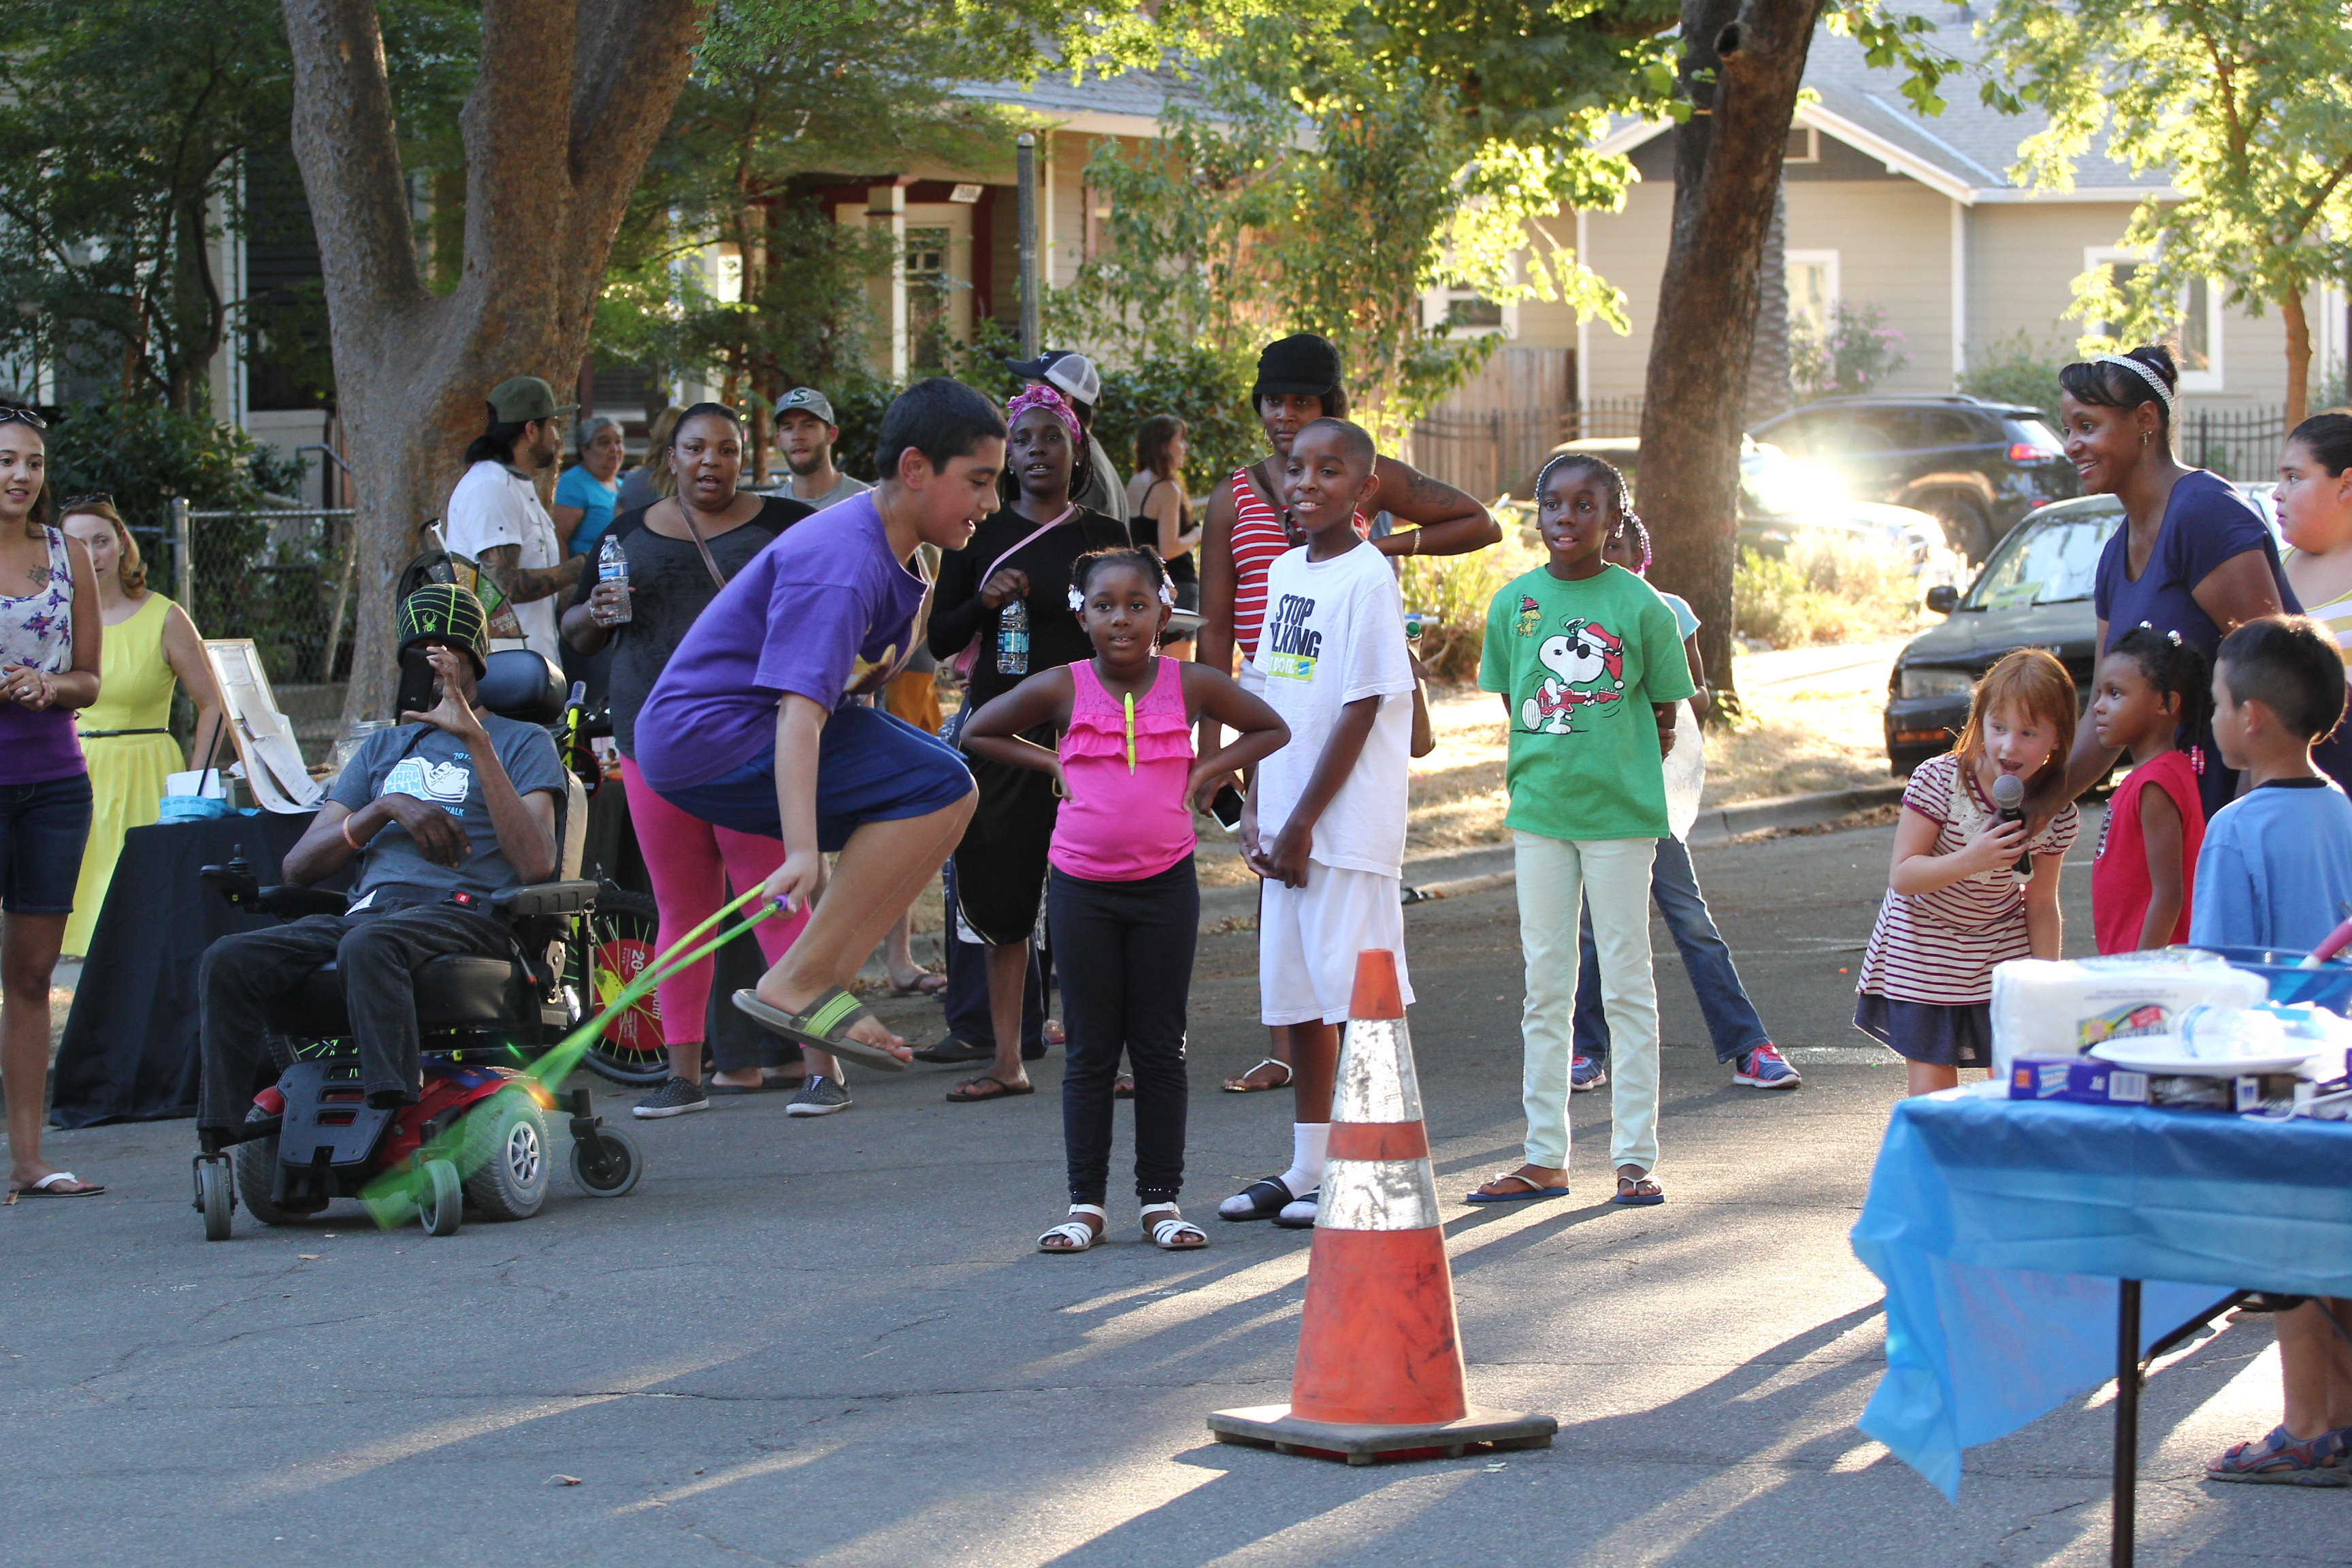 jump rope contest aids neighborhood development